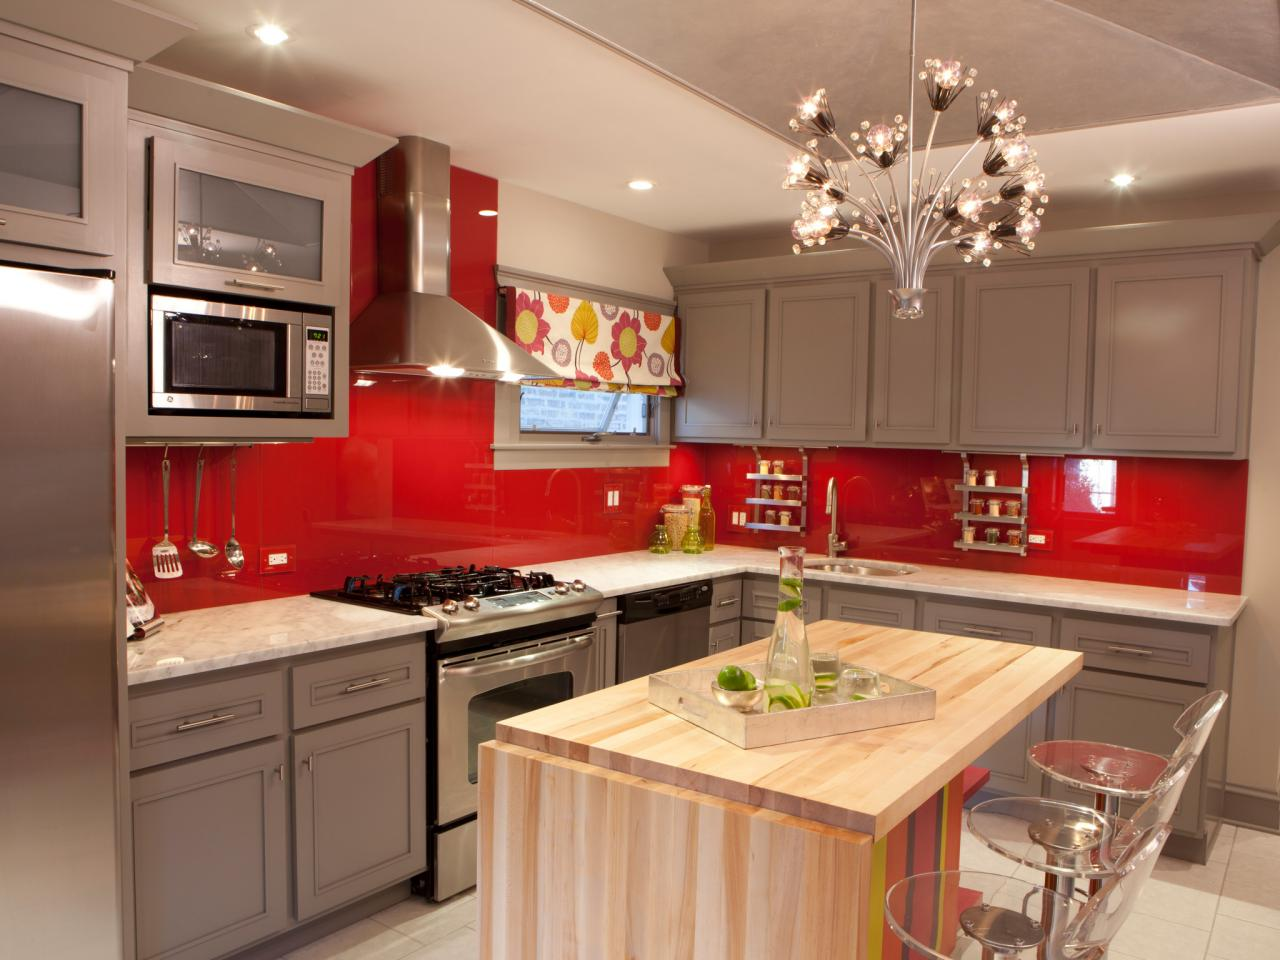 mesmerizing red white kitchen cabinets | Feel a Brand New Kitchen with These Popular Paint Colors ...